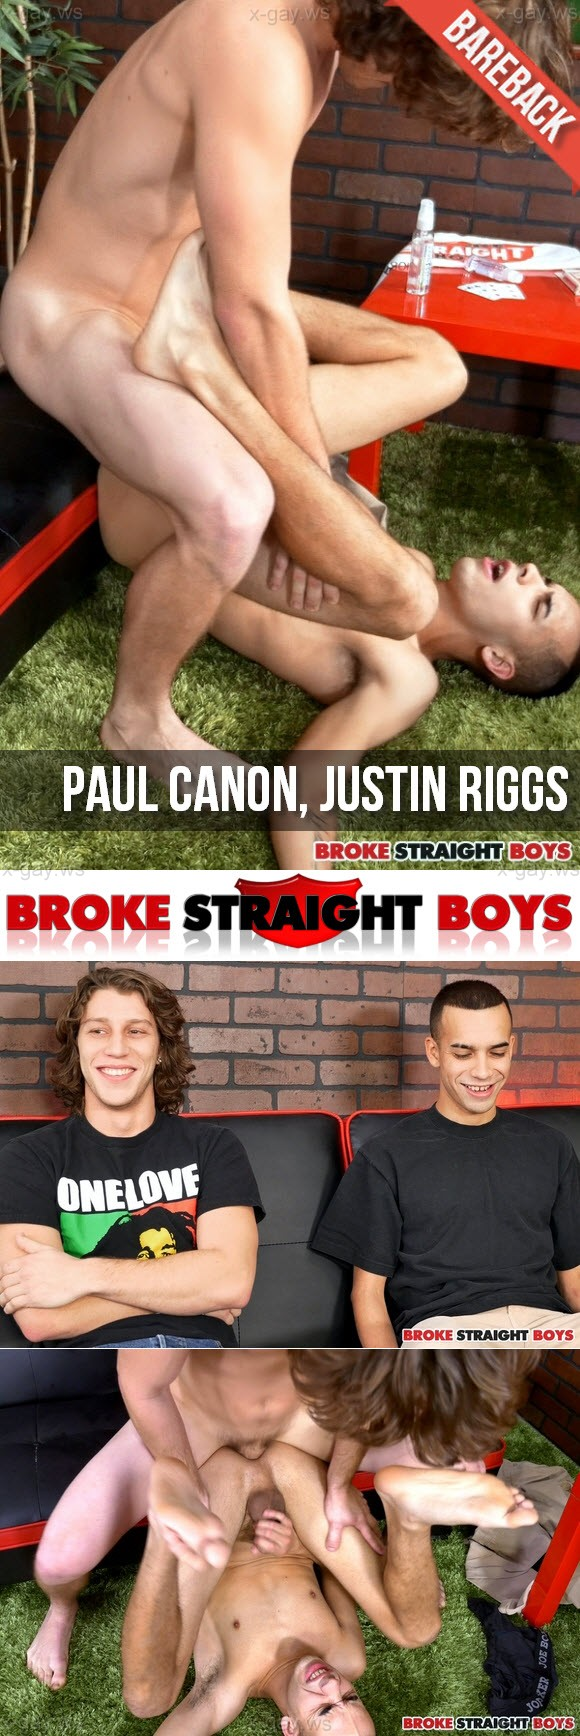 BrokeStraightBoys – Paul Canon & Justin Riggs, RAW